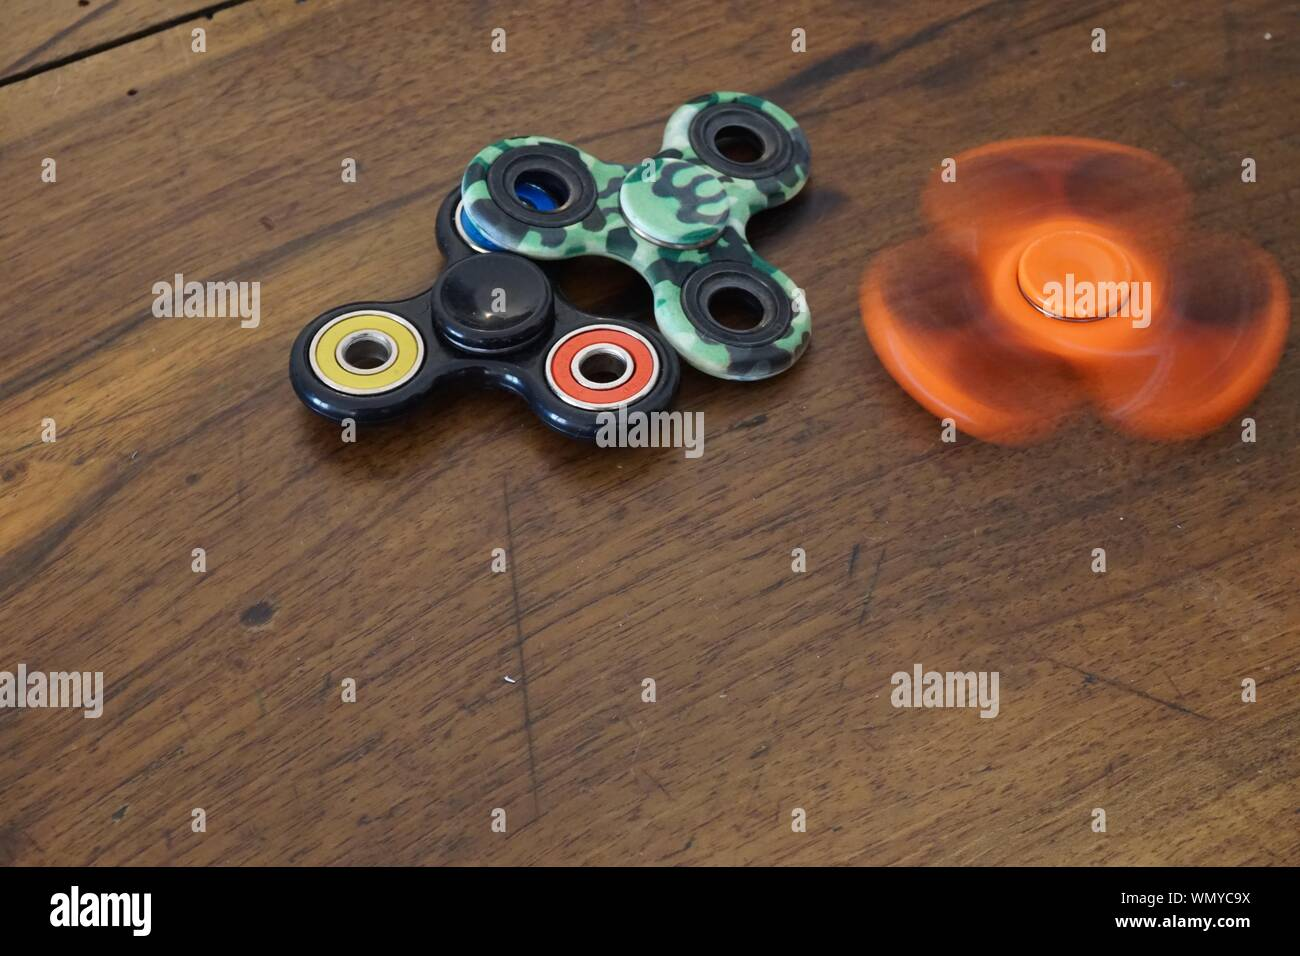 High Angle View Of Colorful Fidget Spinners On Wooden Table Stock Photo